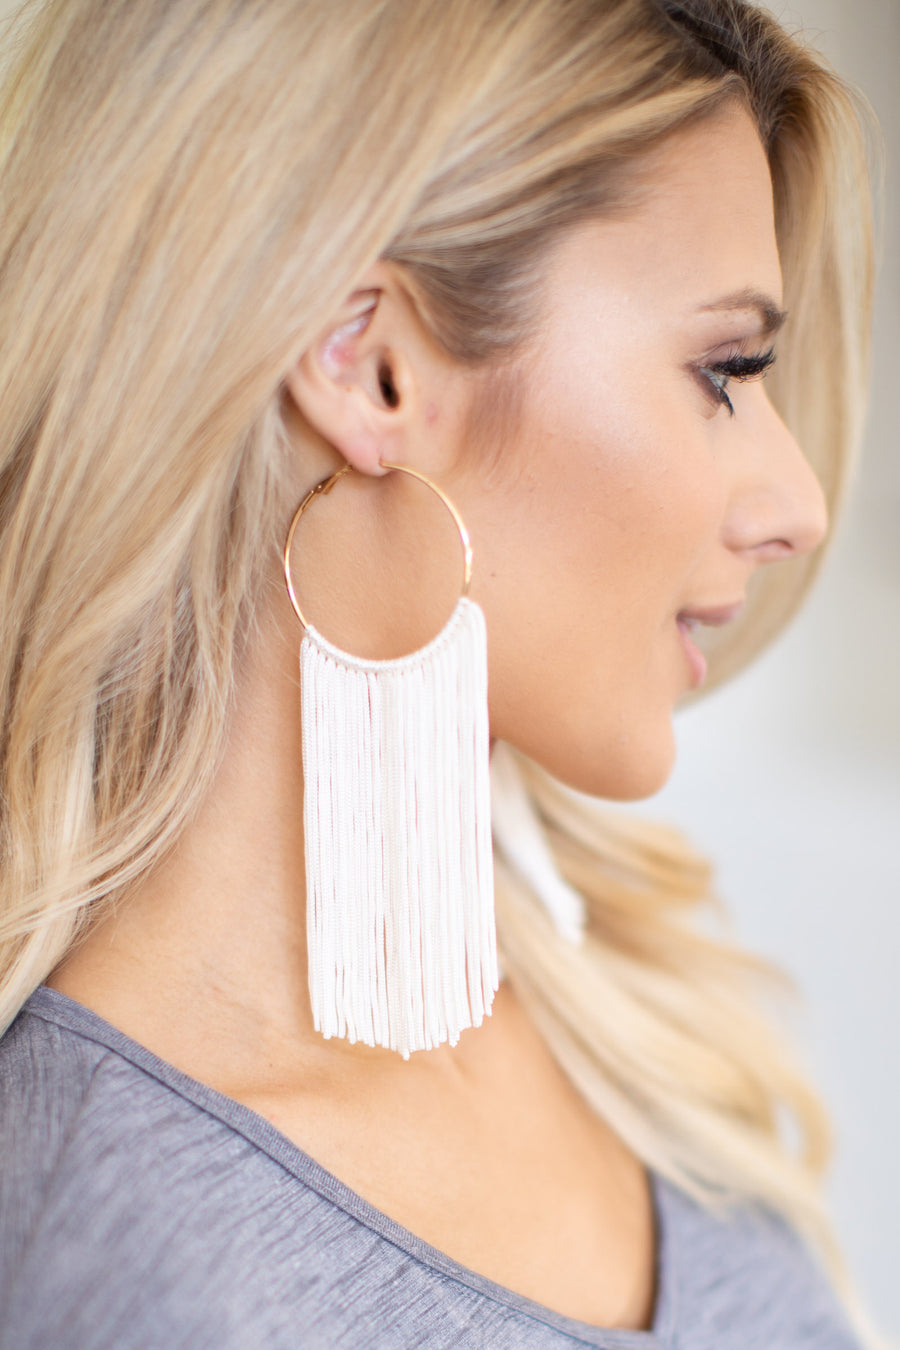 Keep Dancing Fringe Earrings - Gold & White hoop earring with fringe detail, closet candy boutique 1